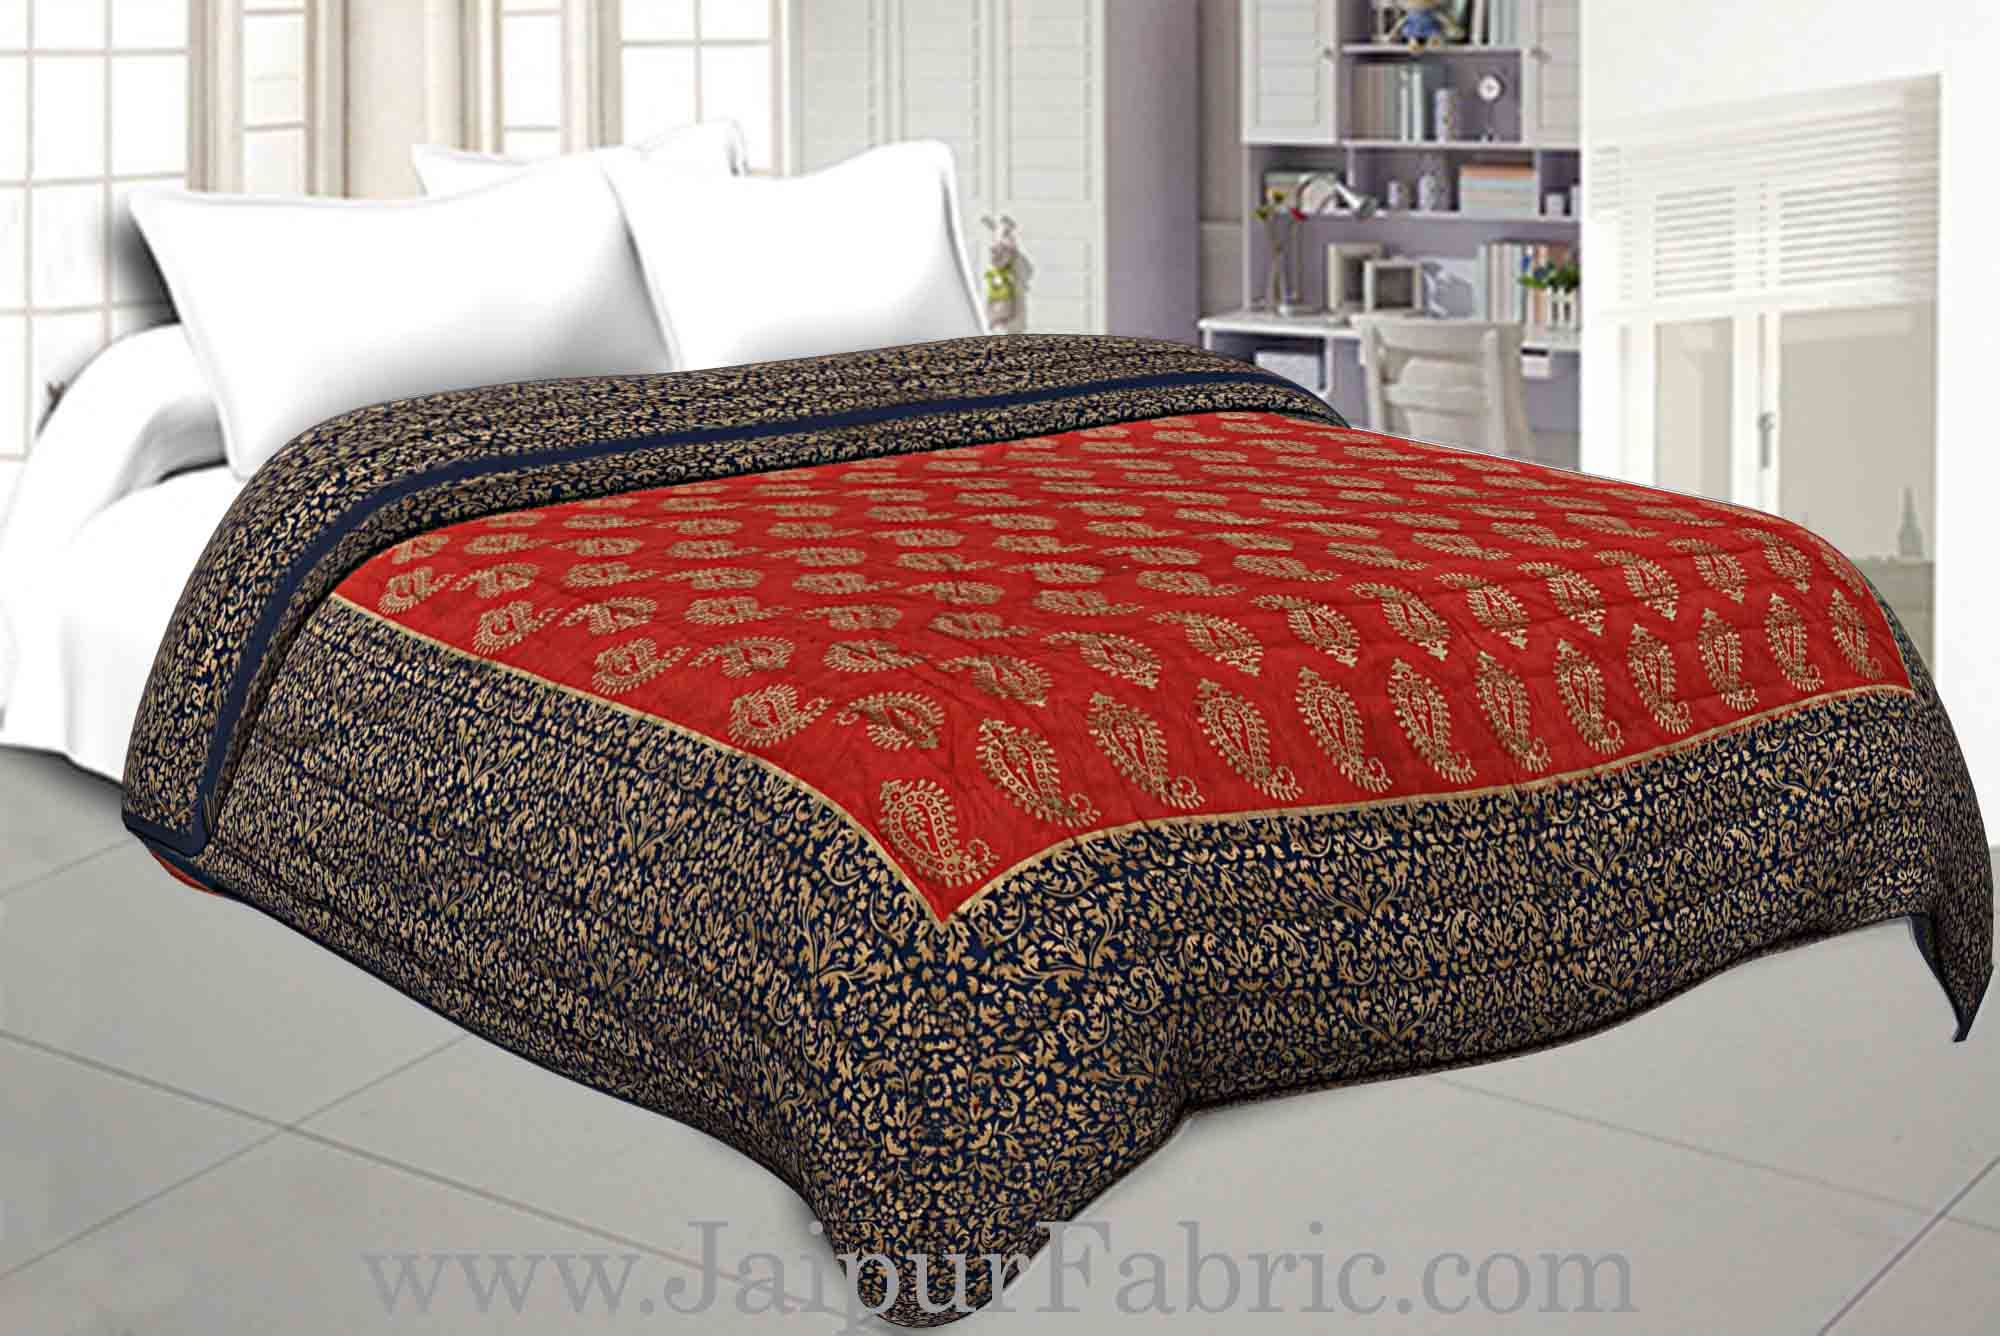 cfa47ed074 Jaipuri Printed Double Bed Razai Golden Red and blue with Paisley pattern